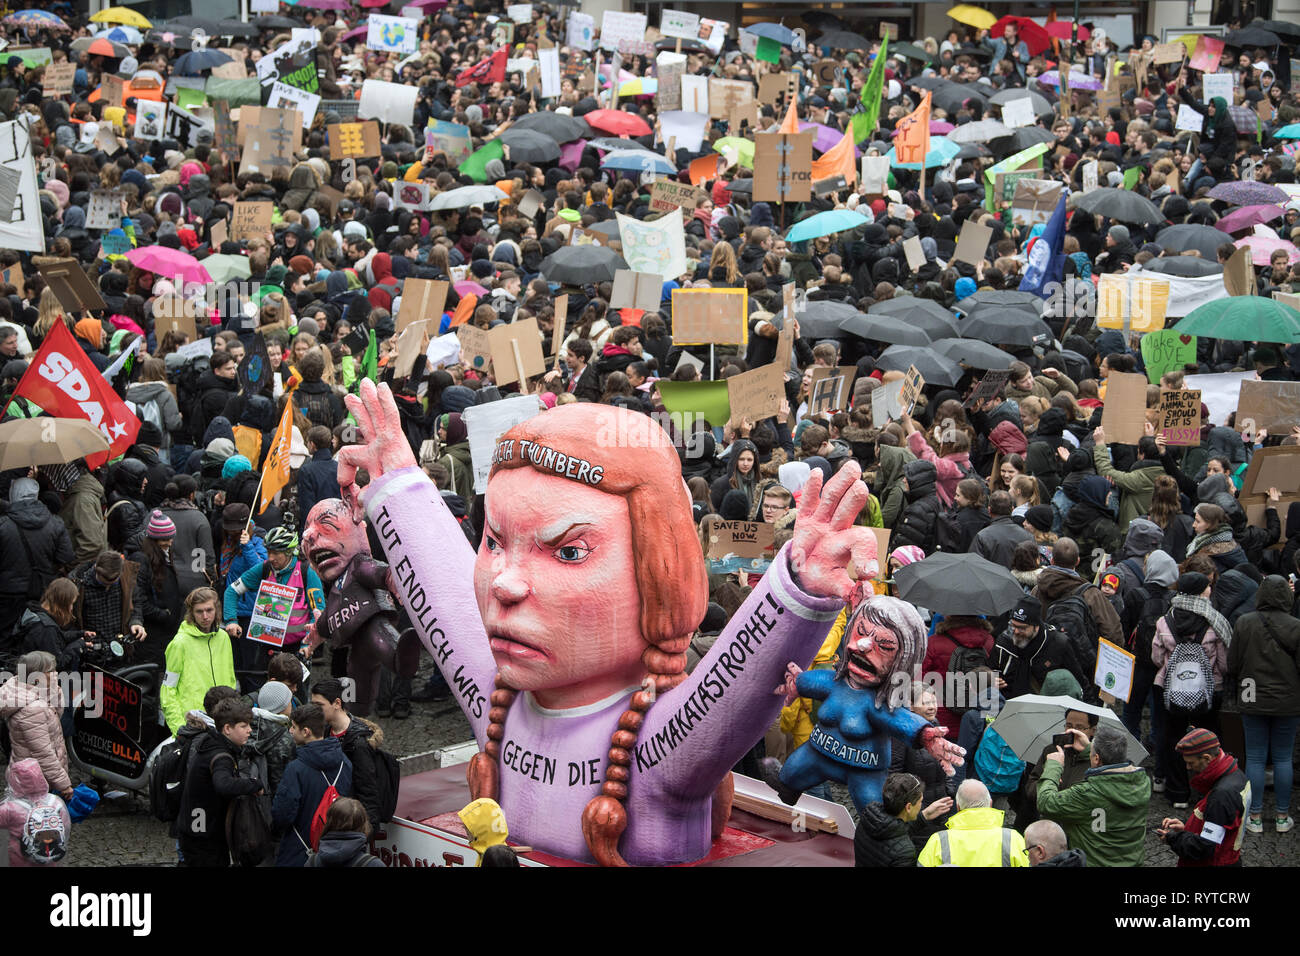 Dusseldorf, Germany. 15 March 2019, North Rhine-Westphalia, Düsseldorf: Students take part in the 'Fridays for Future' climate demonstration in Düsseldorf's city centre. Under the motto #FridaysForFuture, around 1700 rallies in around 100 countries worldwide are on the programme, including various German cities. Photo: Federico Gambarini/dpa Credit: dpa picture alliance/Alamy Live News - Stock Image